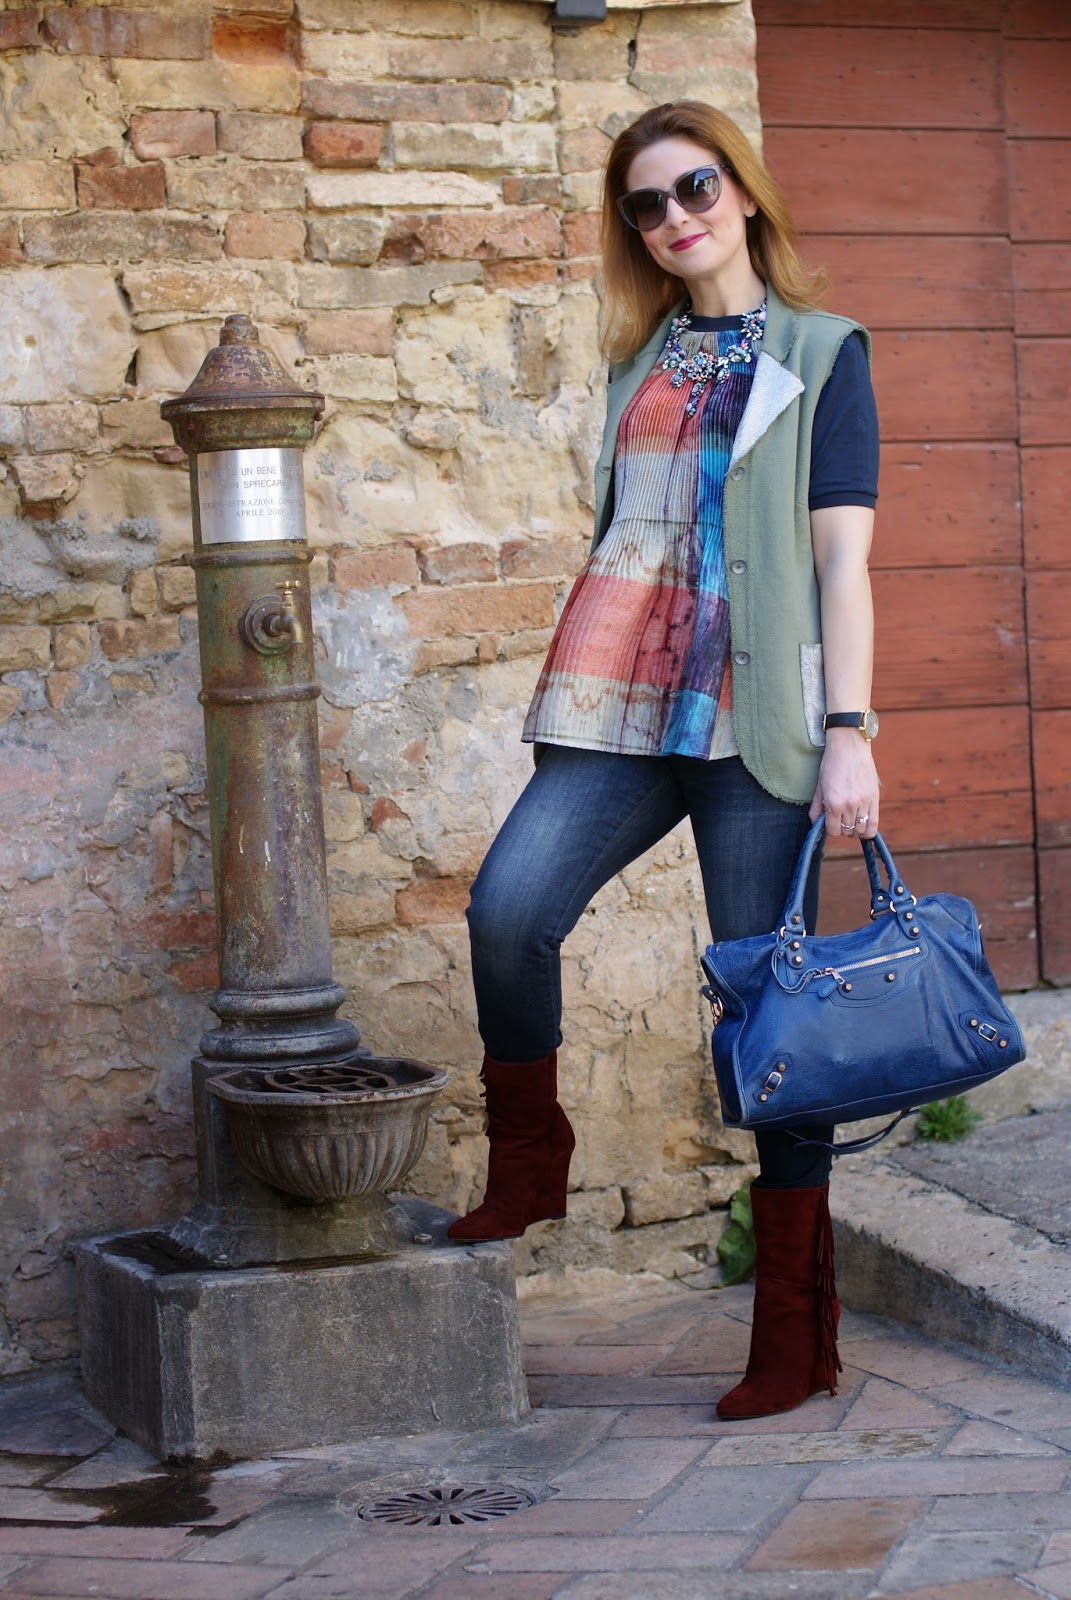 fringed boots, Praio sleeveless jacket, Millelire orologio, Balenciaga City, Fashion and Cookies, fashion blogger